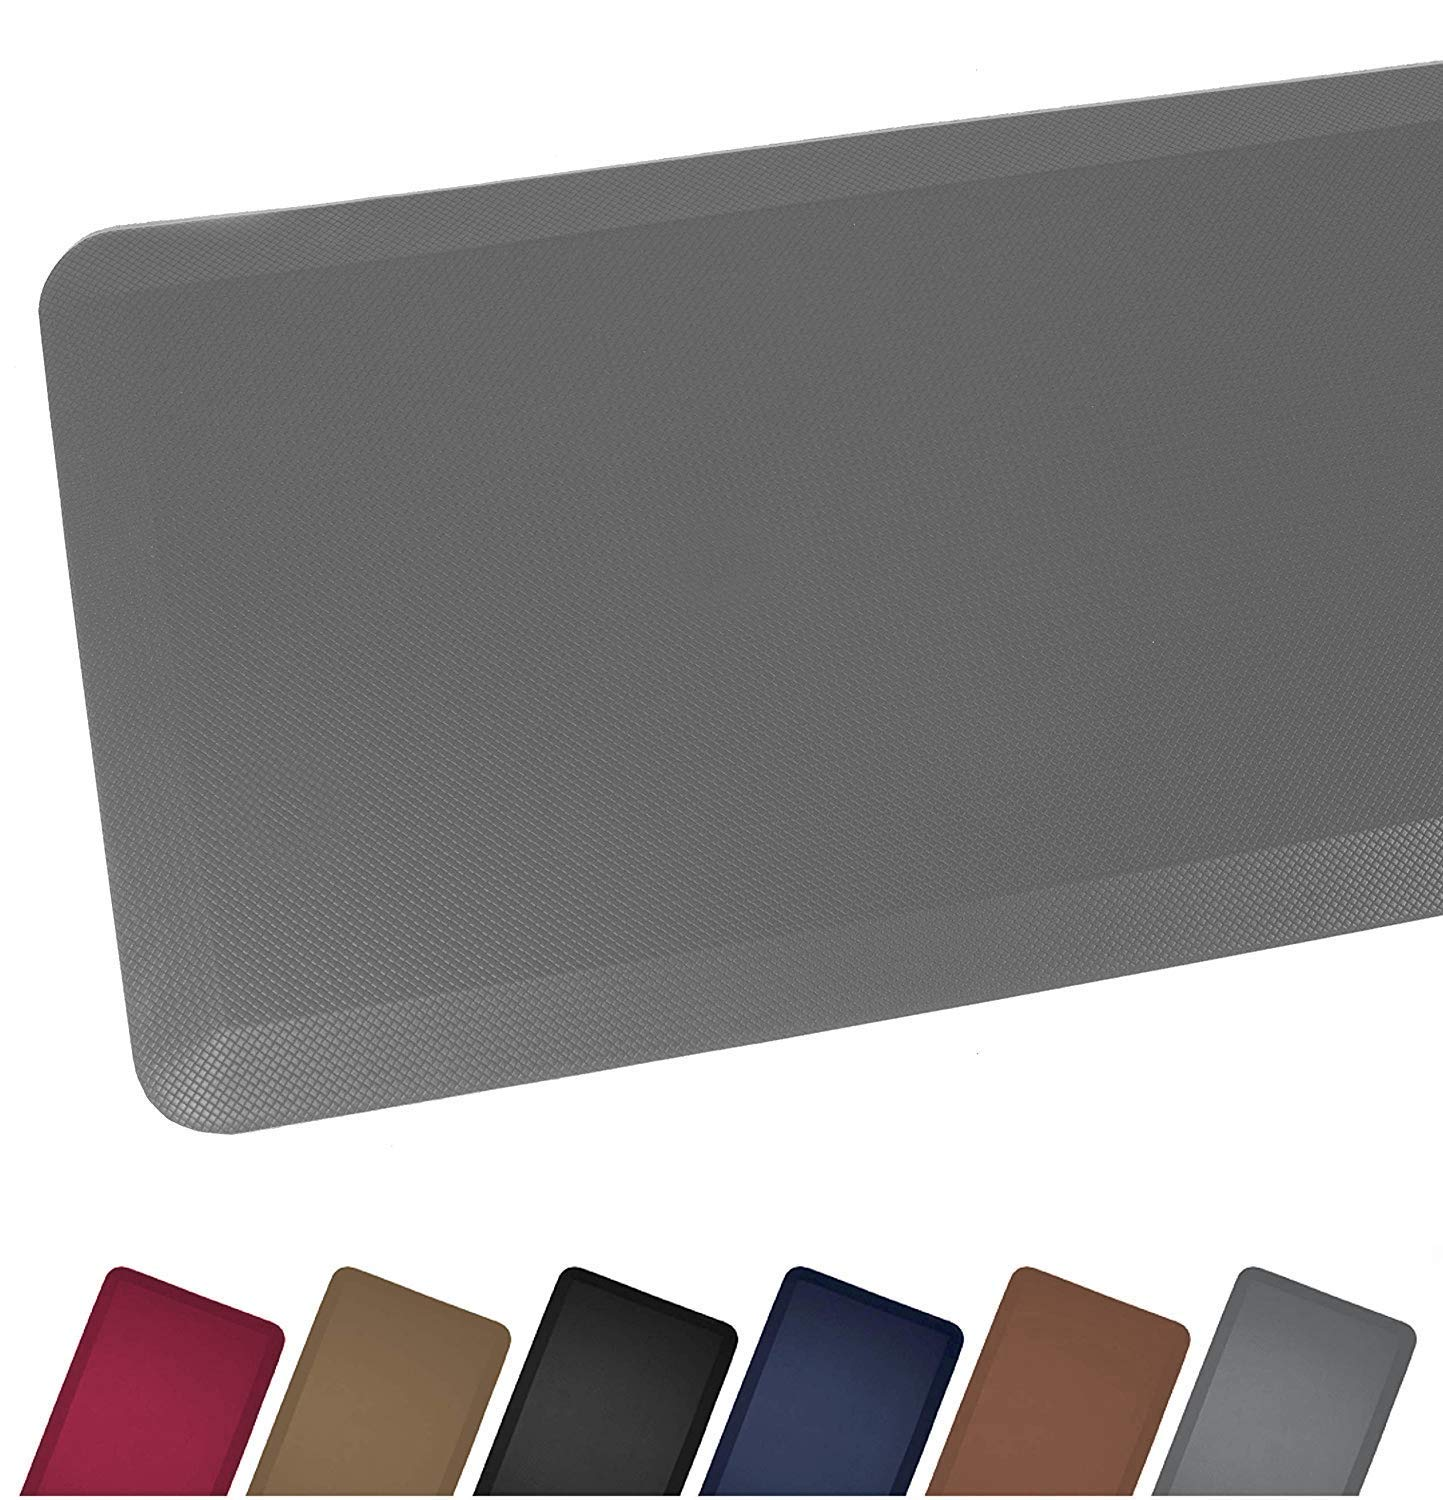 "Sky Mat, Comfort Anti Fatigue Mat 20 x 39 x 3/4"", 7 Colors and 3 Sizes, Perfect for Kitchens and Standing Desks, Gray/Grey"